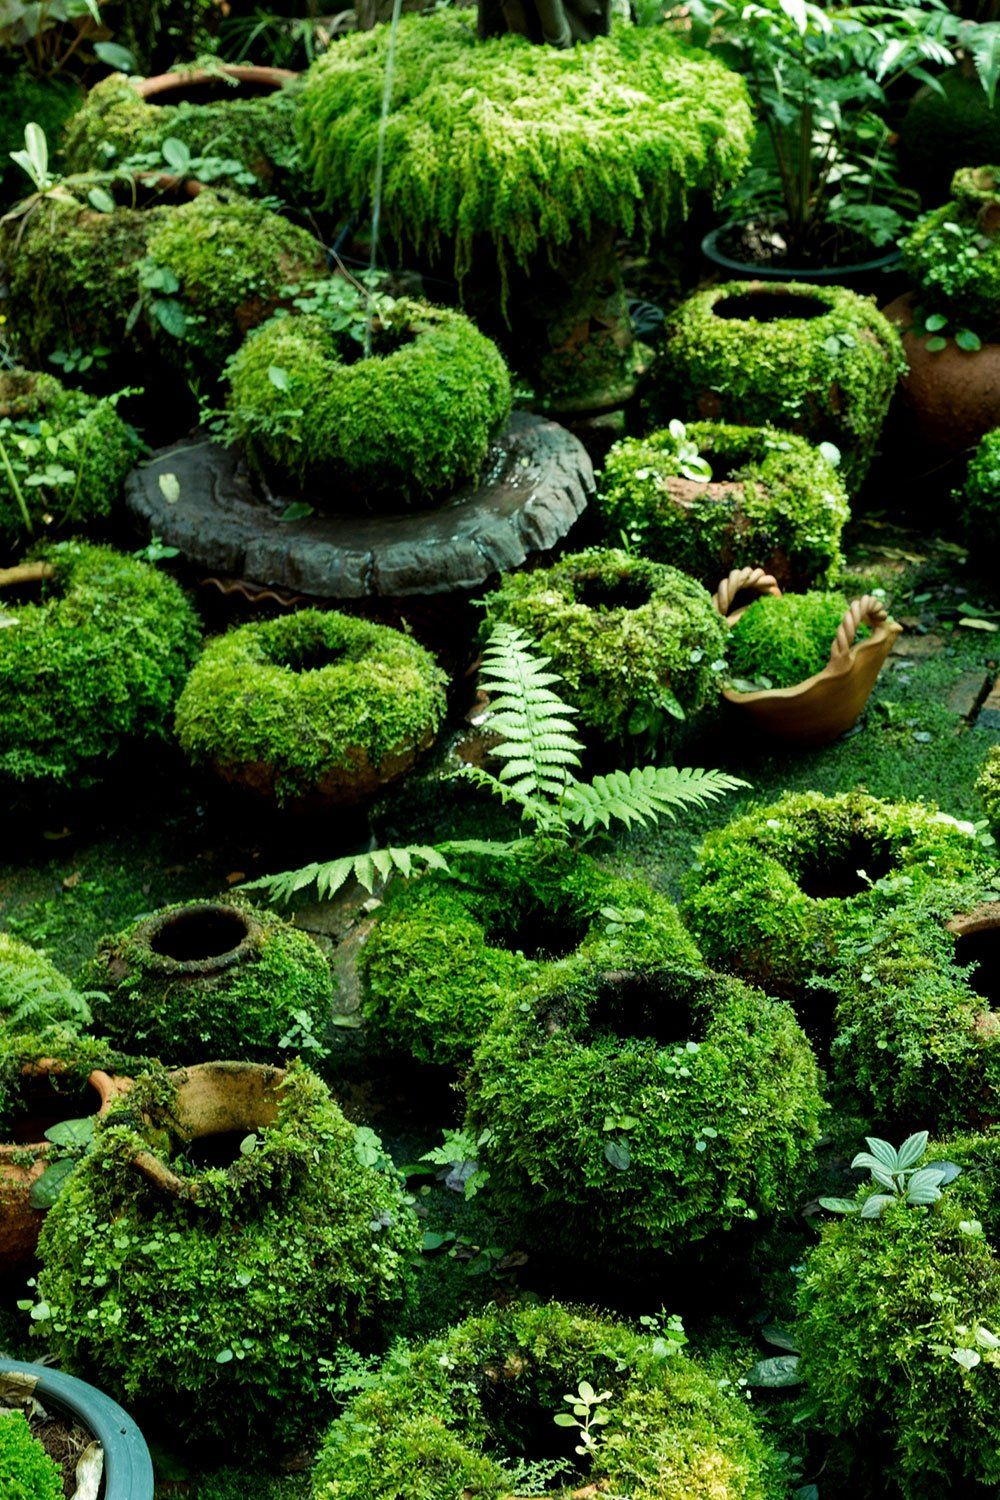 Make DIY Moss Covered Pots With Living Paint is part of Garden projects, Moss garden, Garden design, Moss paint, Cottage garden, Garden landscaping - Want to make some DIY Mossy Pots with us  It's a pretty easy project, but very rewarding in a lush, green kind of way  We're going to show you how to make living moss paint, and how to apply this living paint to terra cotta pots or garden ornaments, that will grow over time to become lush, verdant little ecosystems  like a living piece of art!